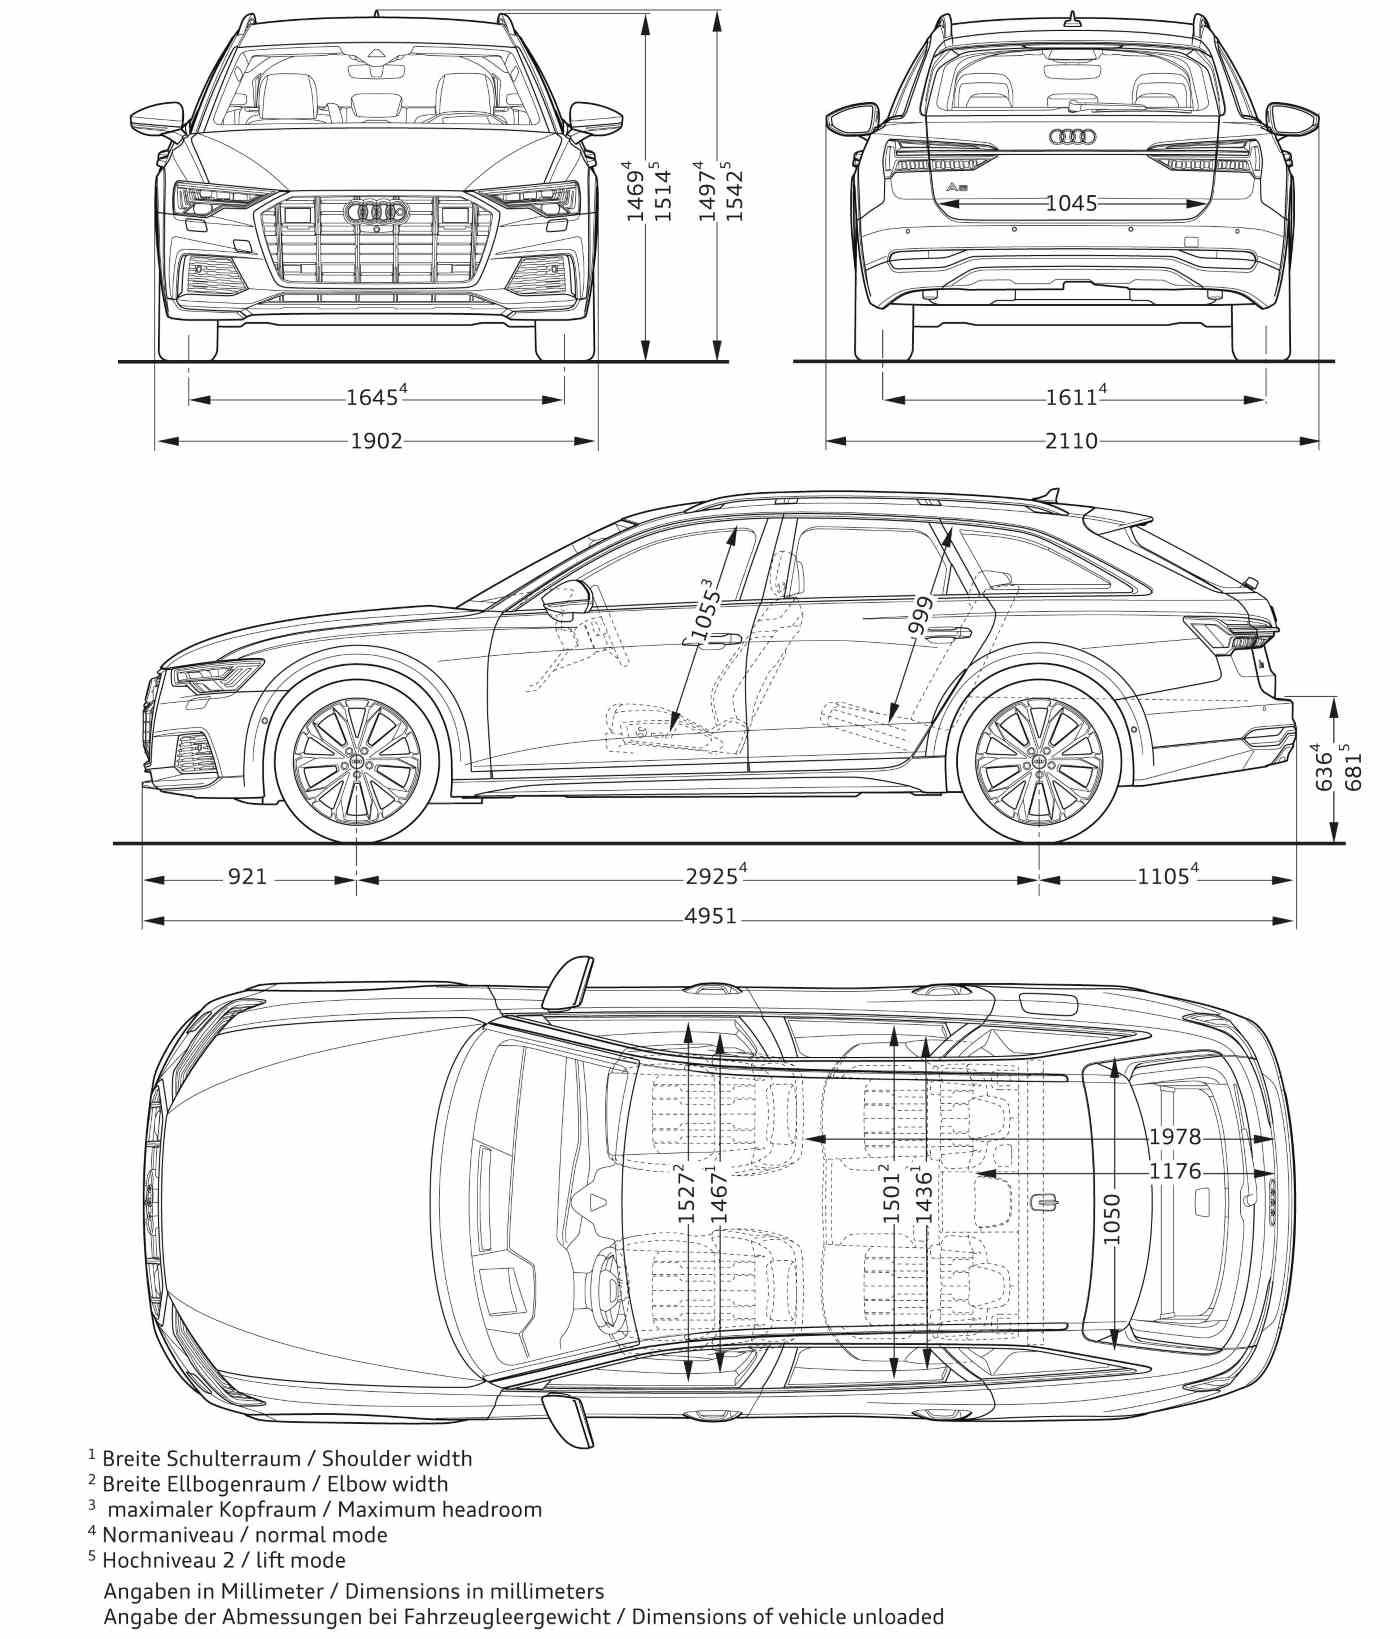 Audi A6 allroad 2020 taille dimensions longueur